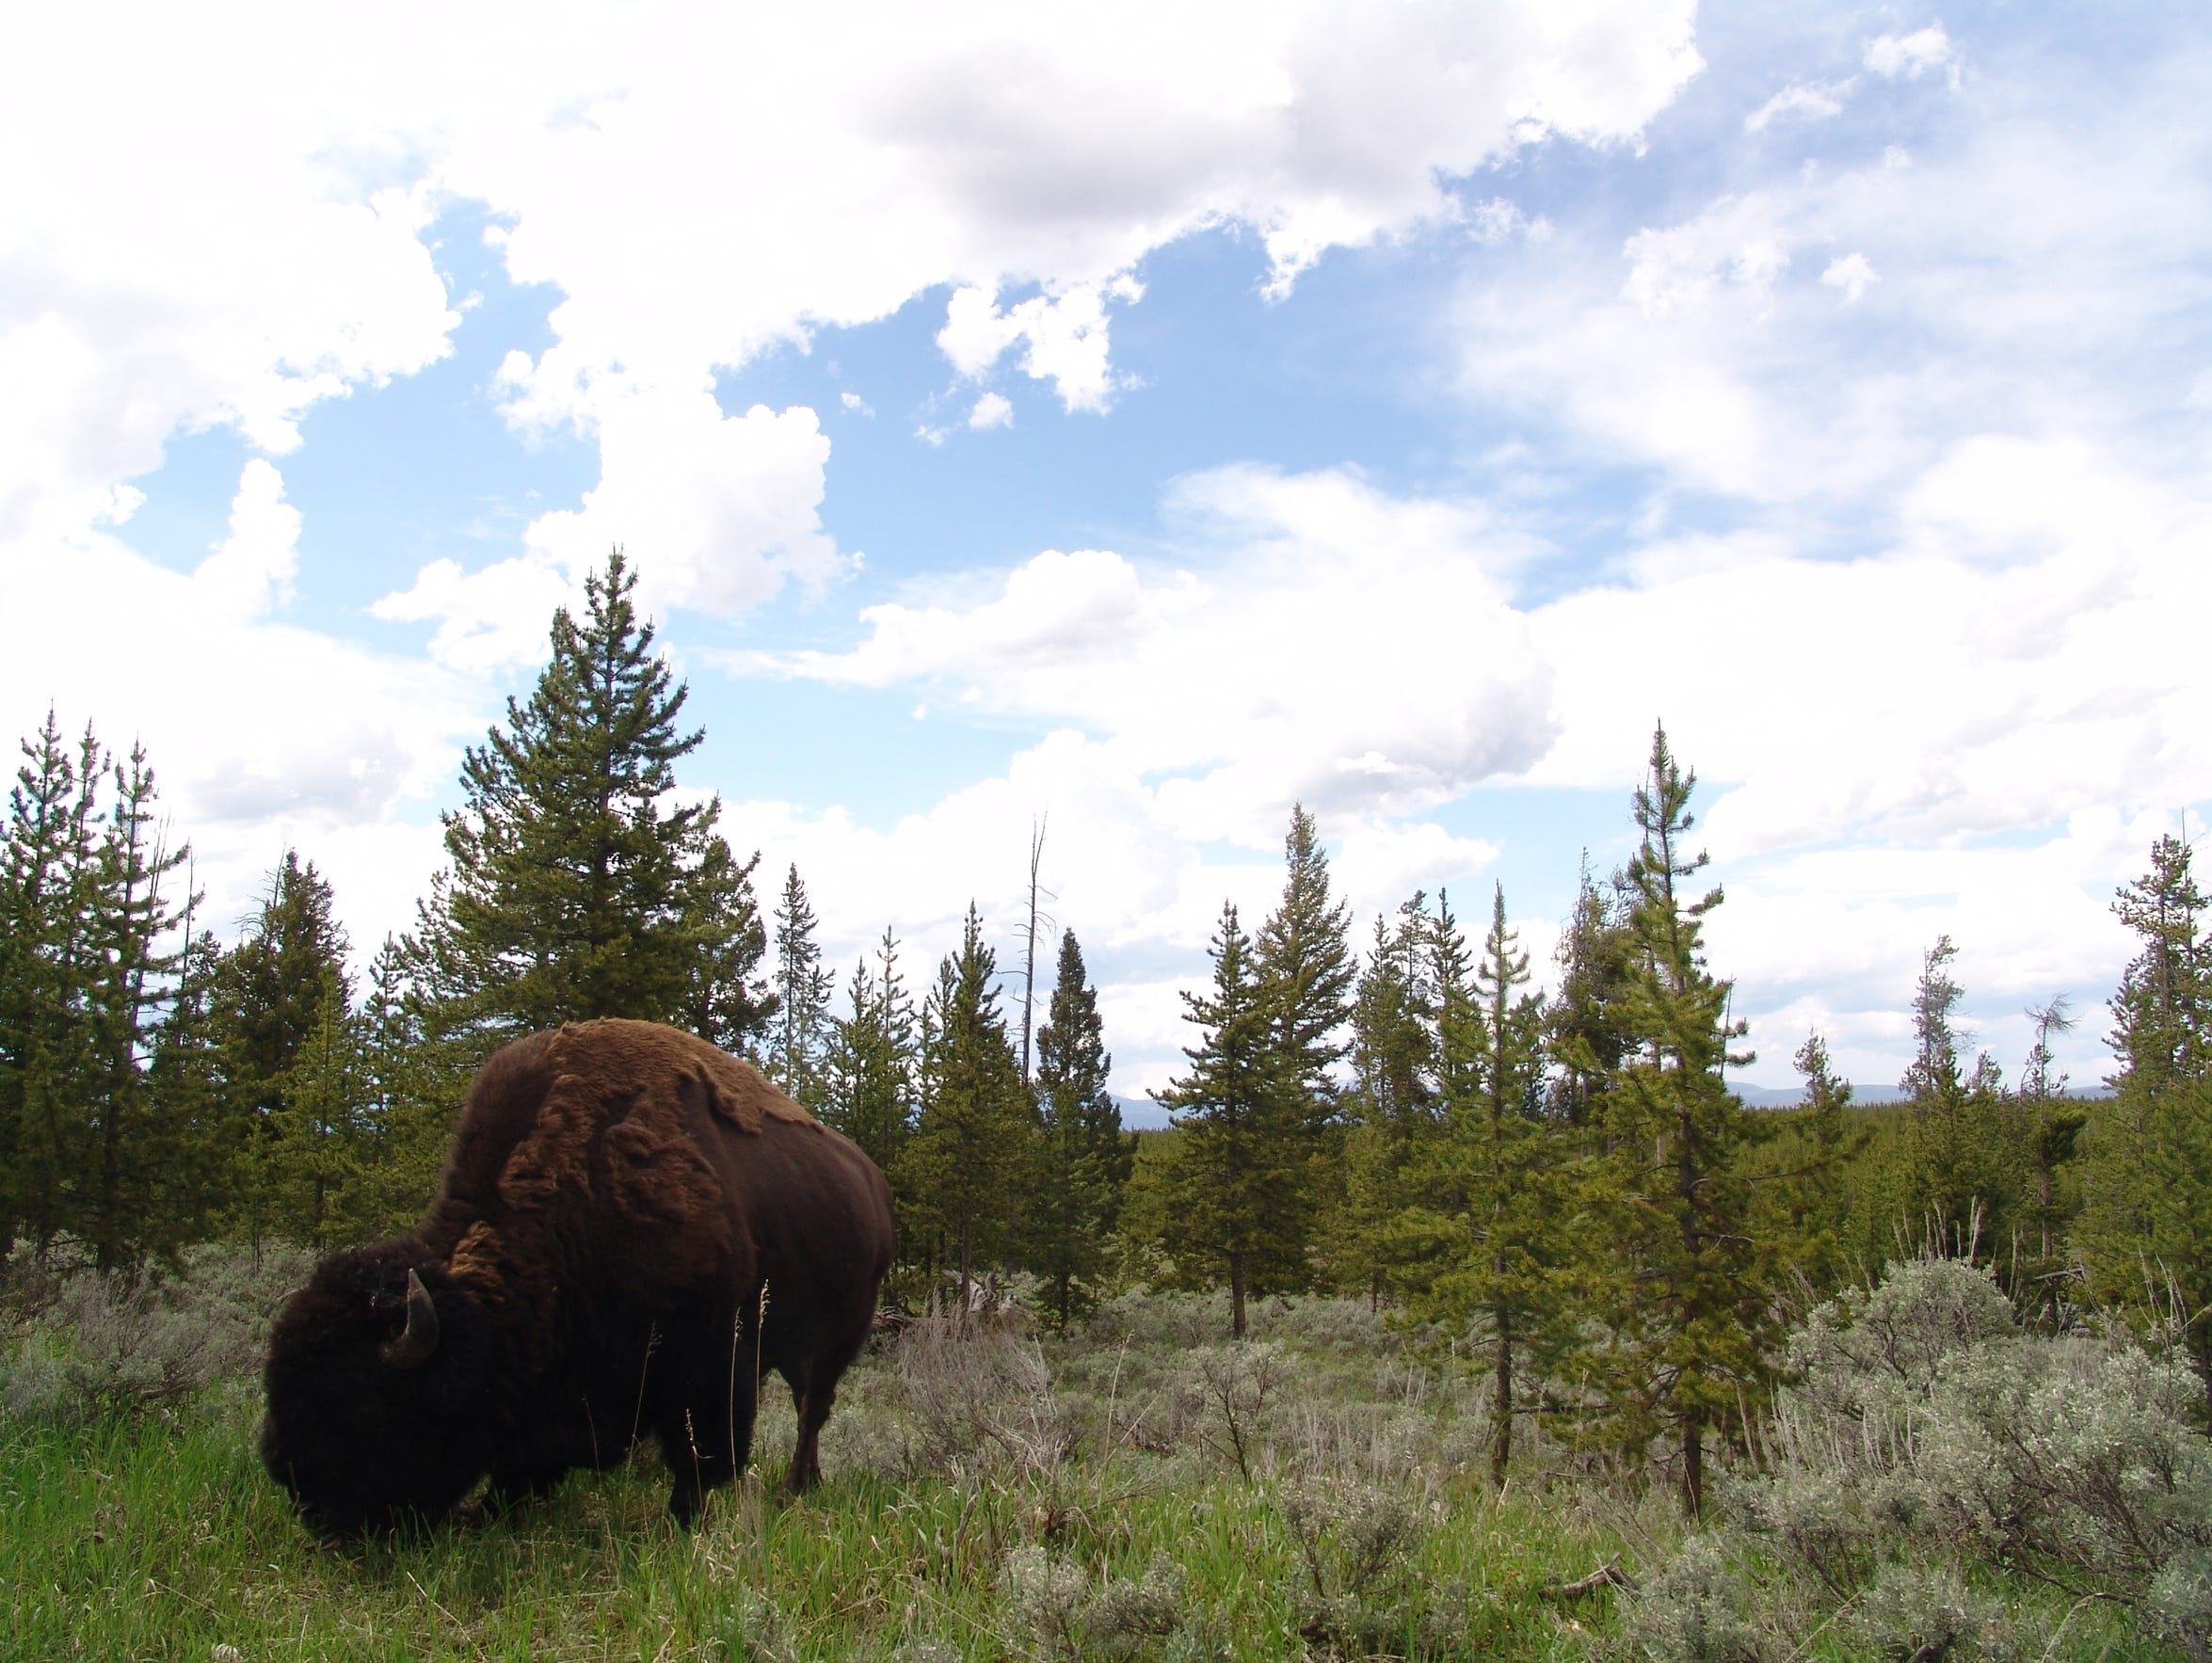 A bison along the Madison River in Yellowstone National